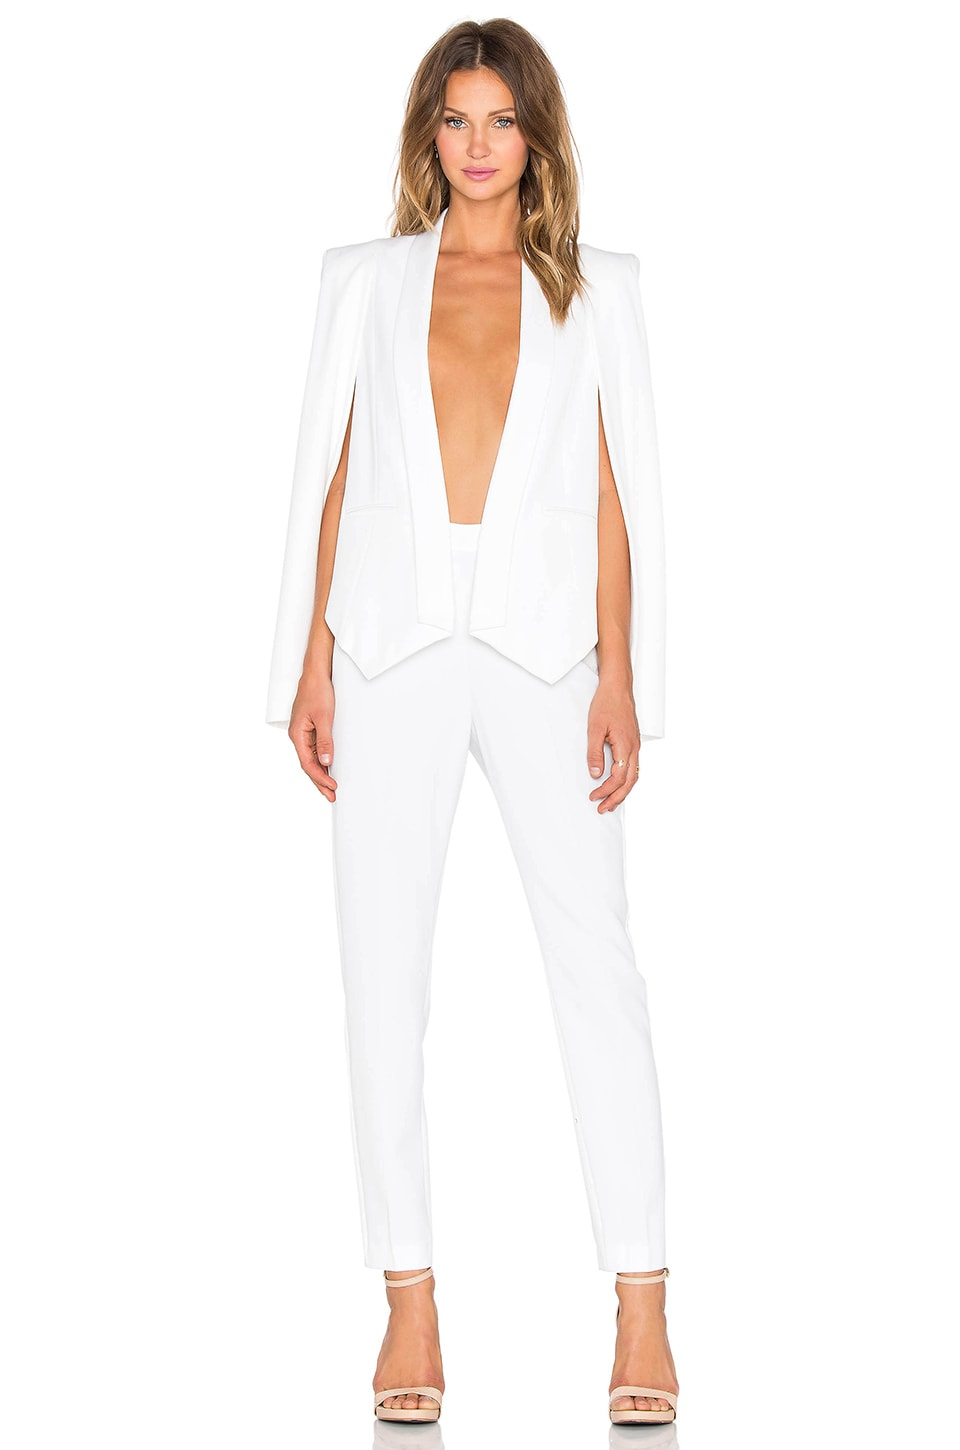 White Jumpsuit With Cape